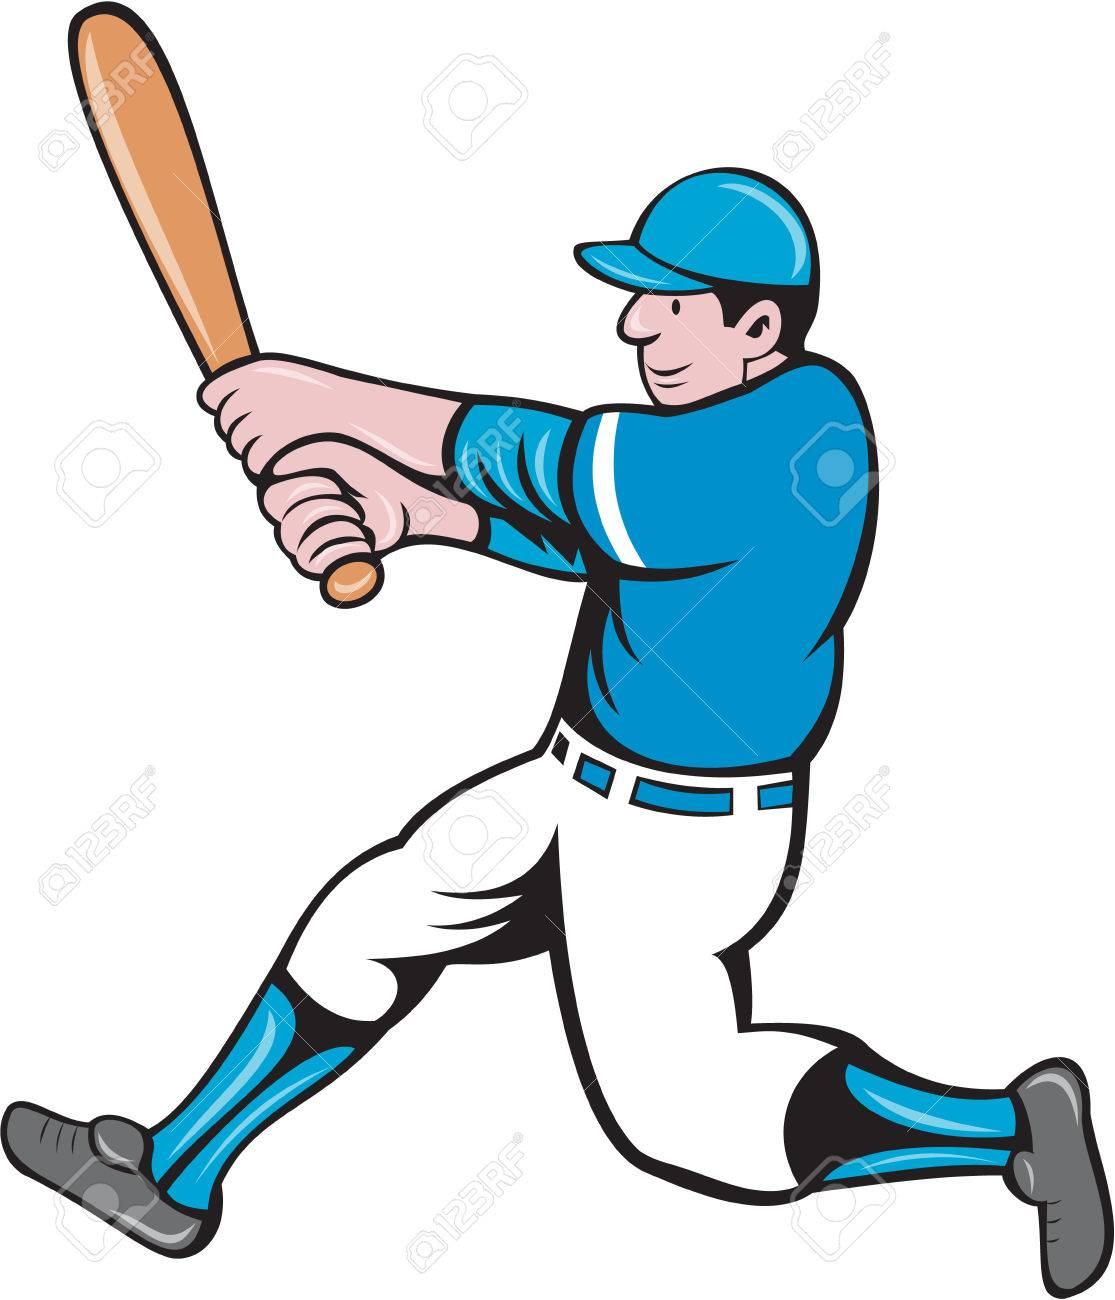 hight resolution of illustration of an american baseball player batter holding bat batting swinging bat viewed from the side